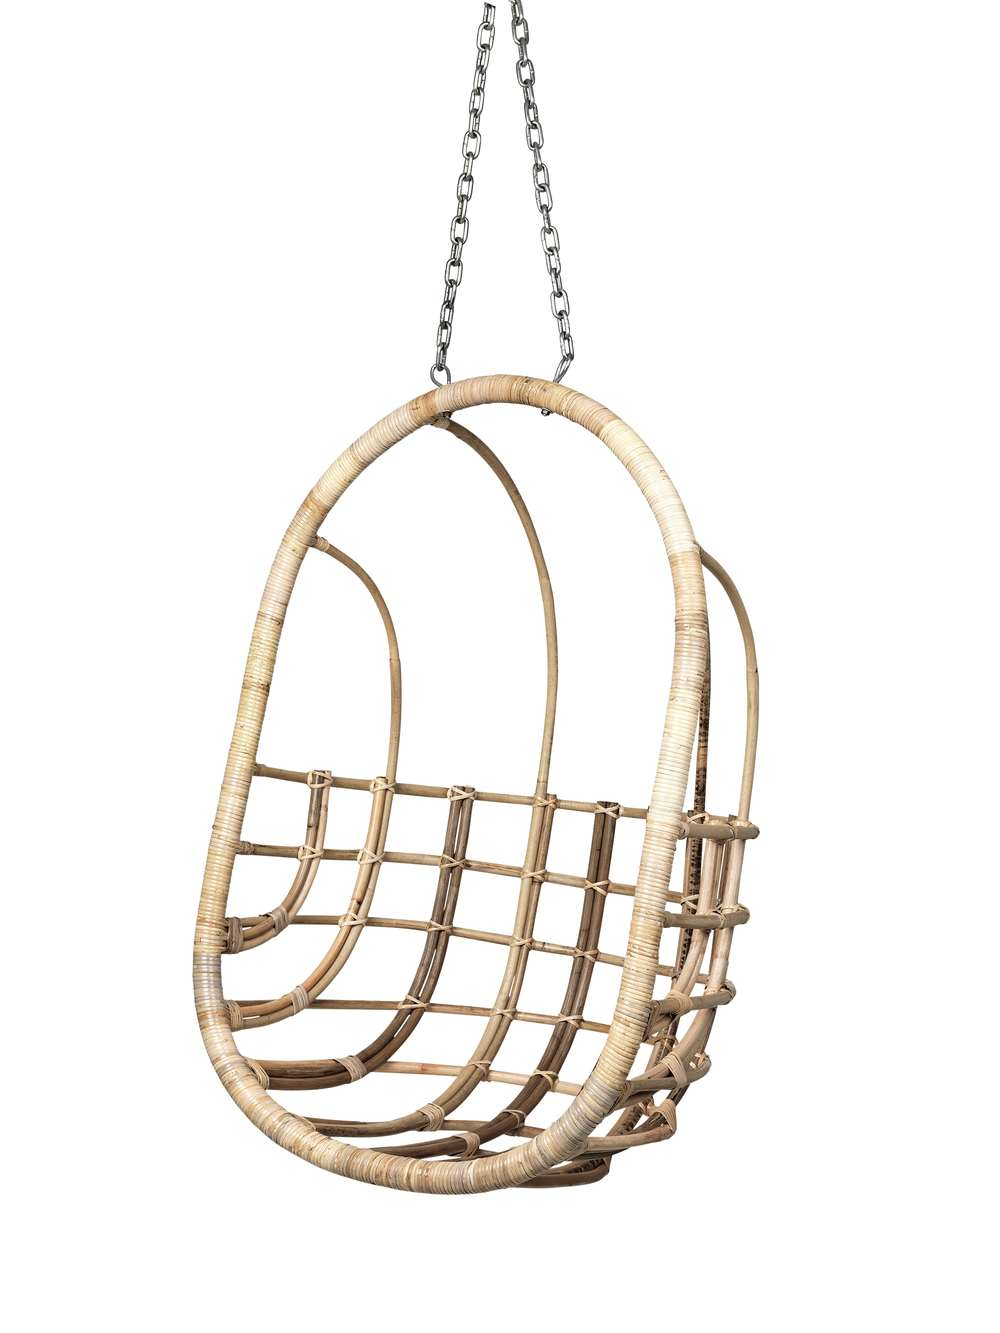 The Egg Chair Rattan Hanging Chair | Hanging Rattan Chair | Indoor